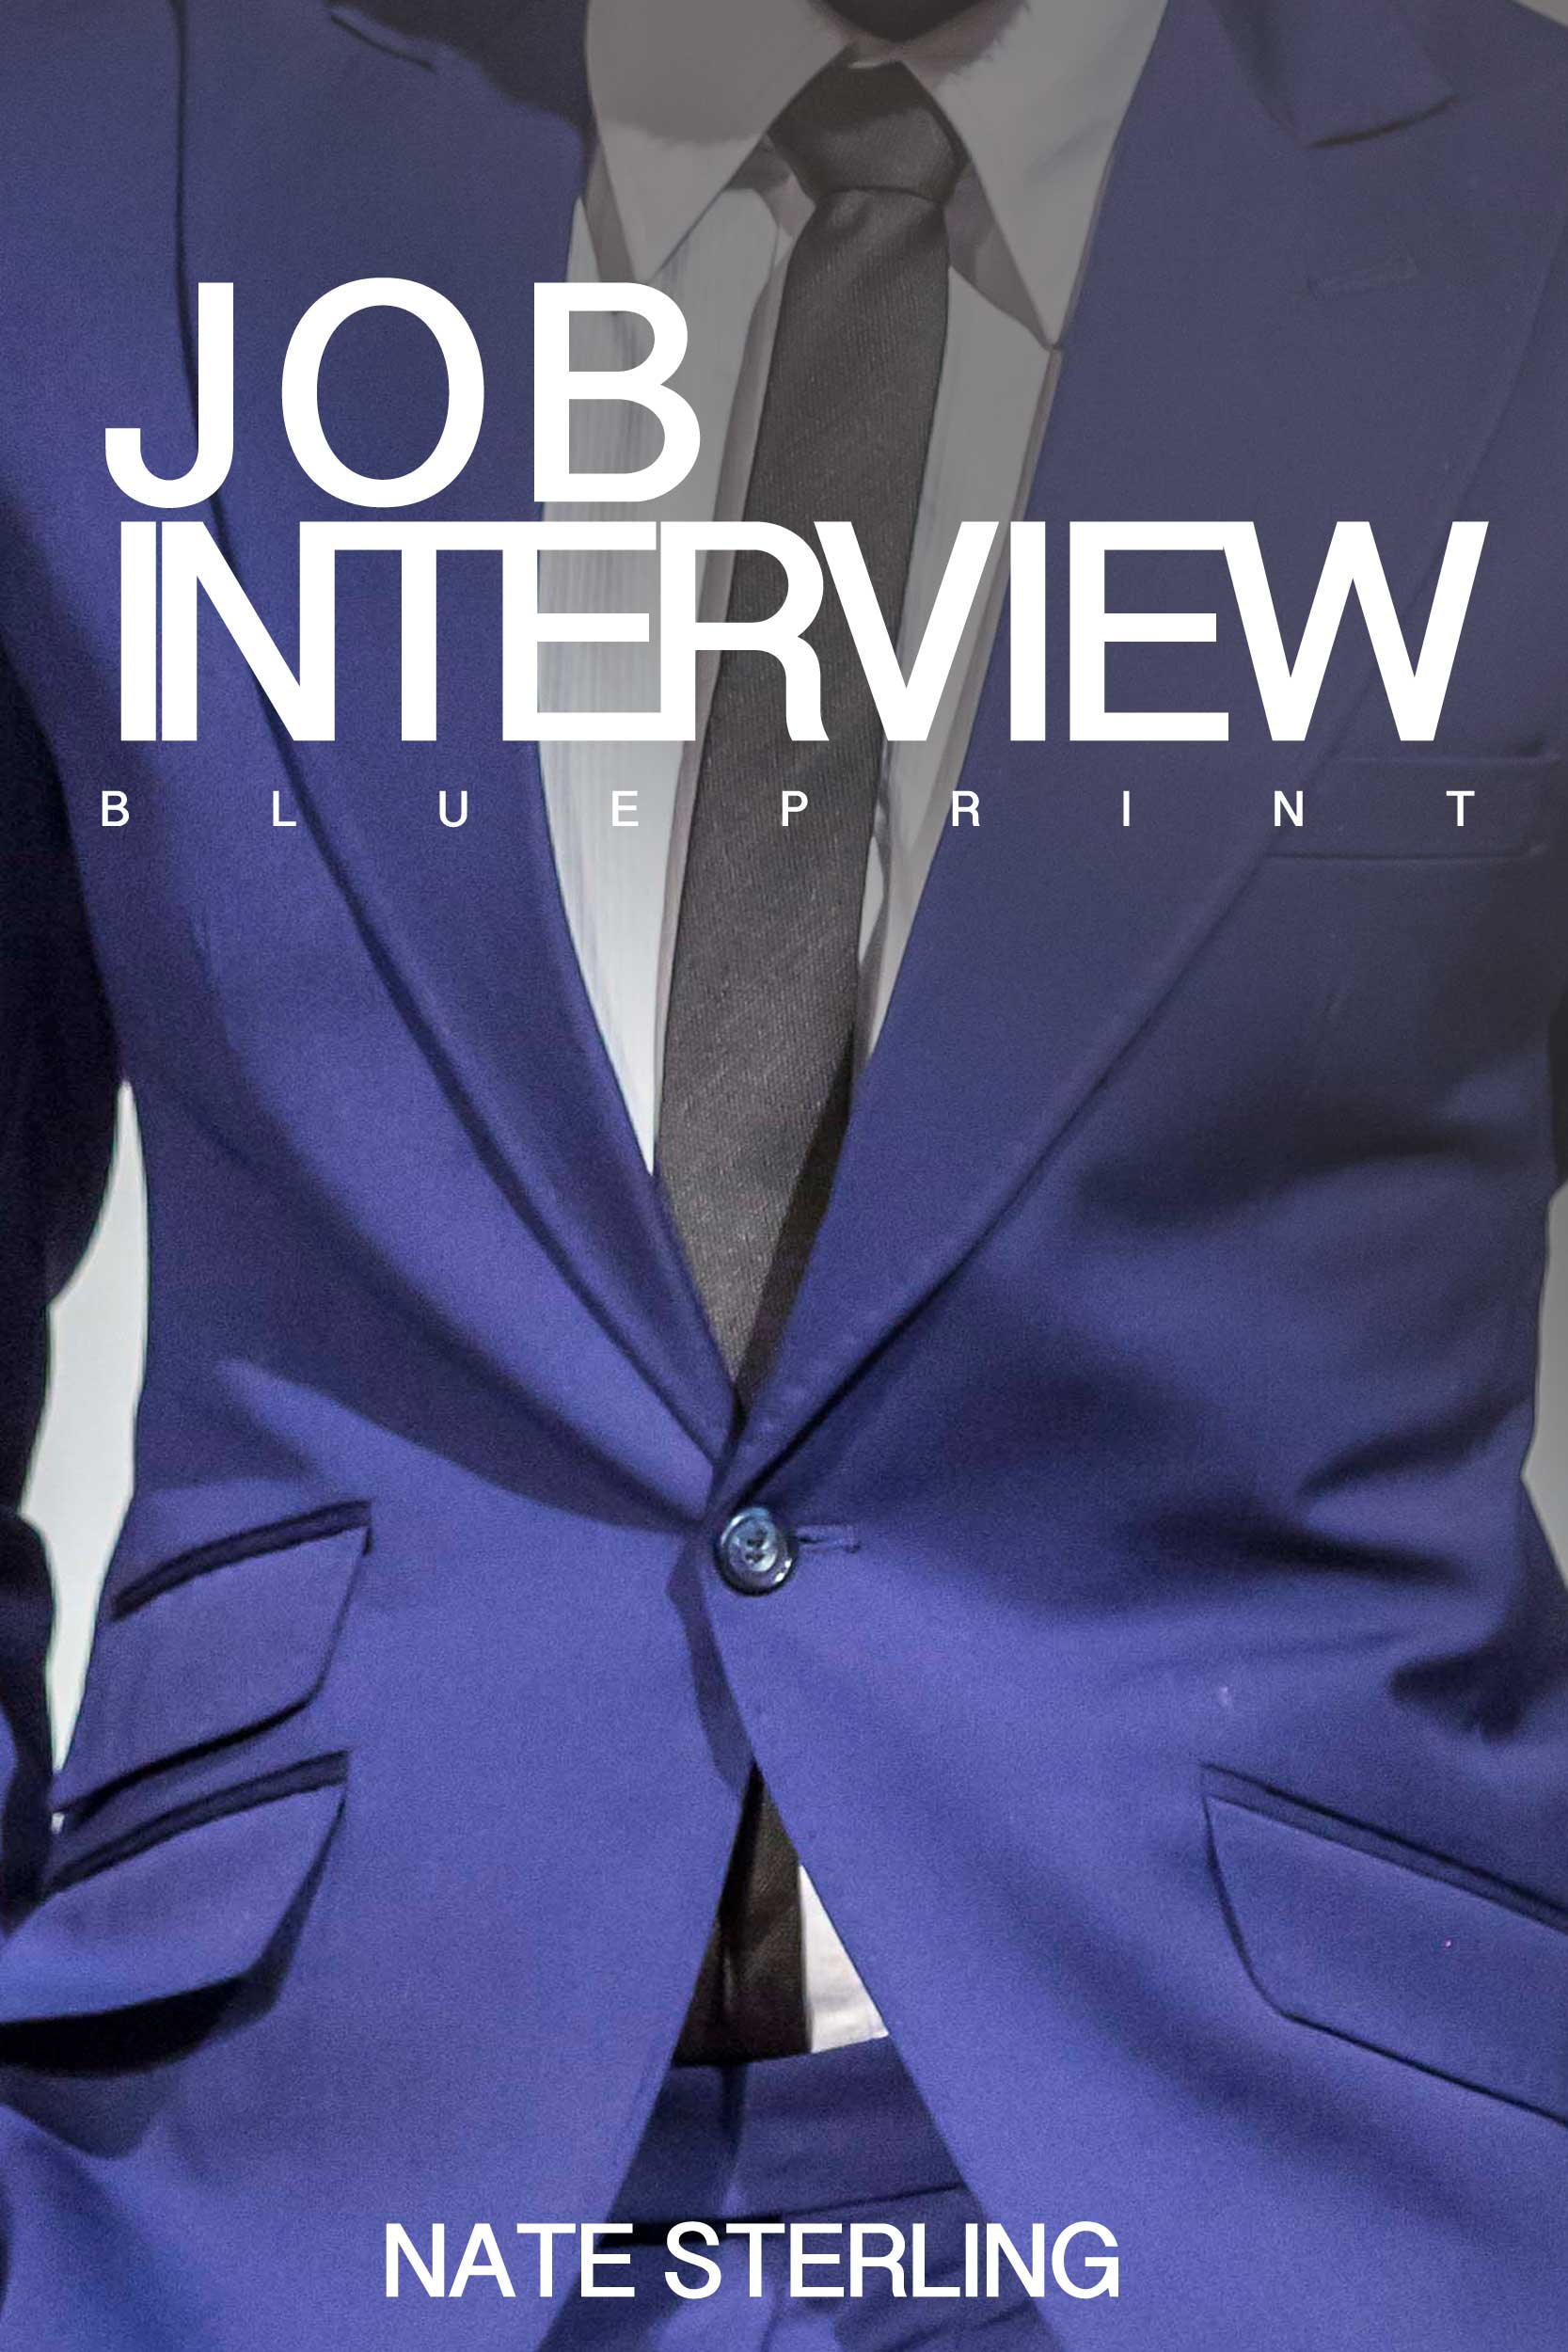 JOB-INTERVIEW-BLUEPRINT